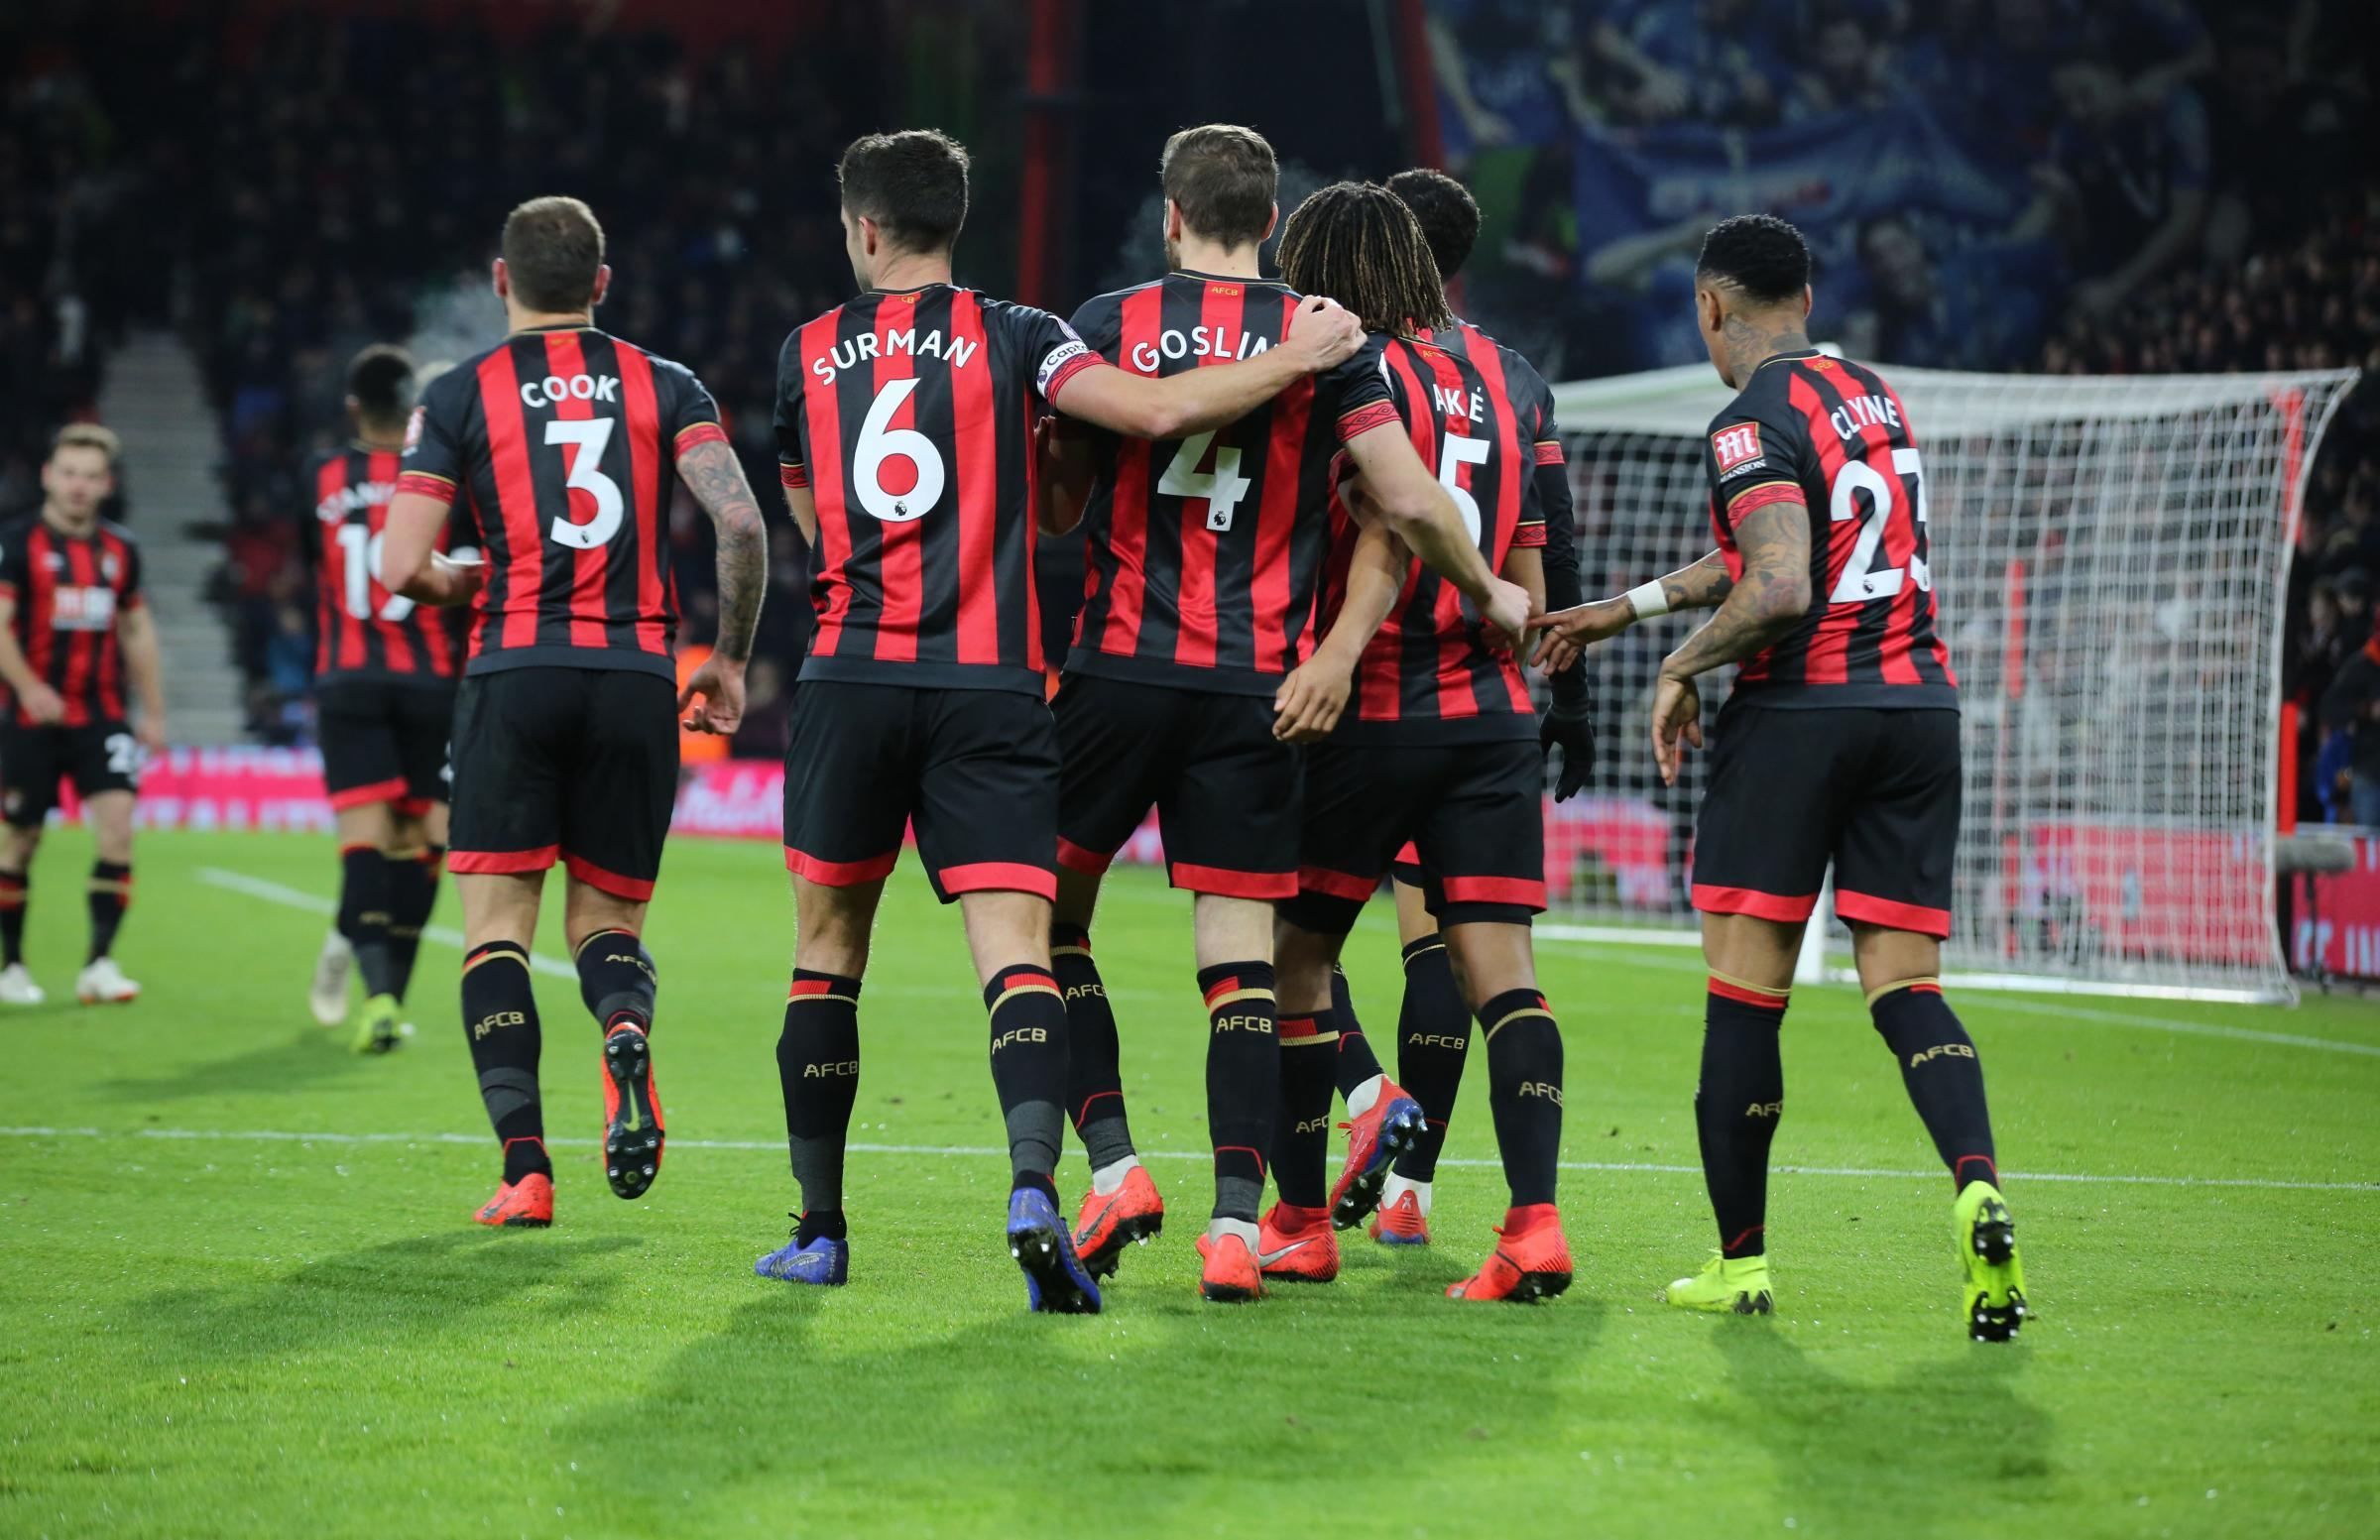 15 moments from AFC Bournemouth v Chelsea